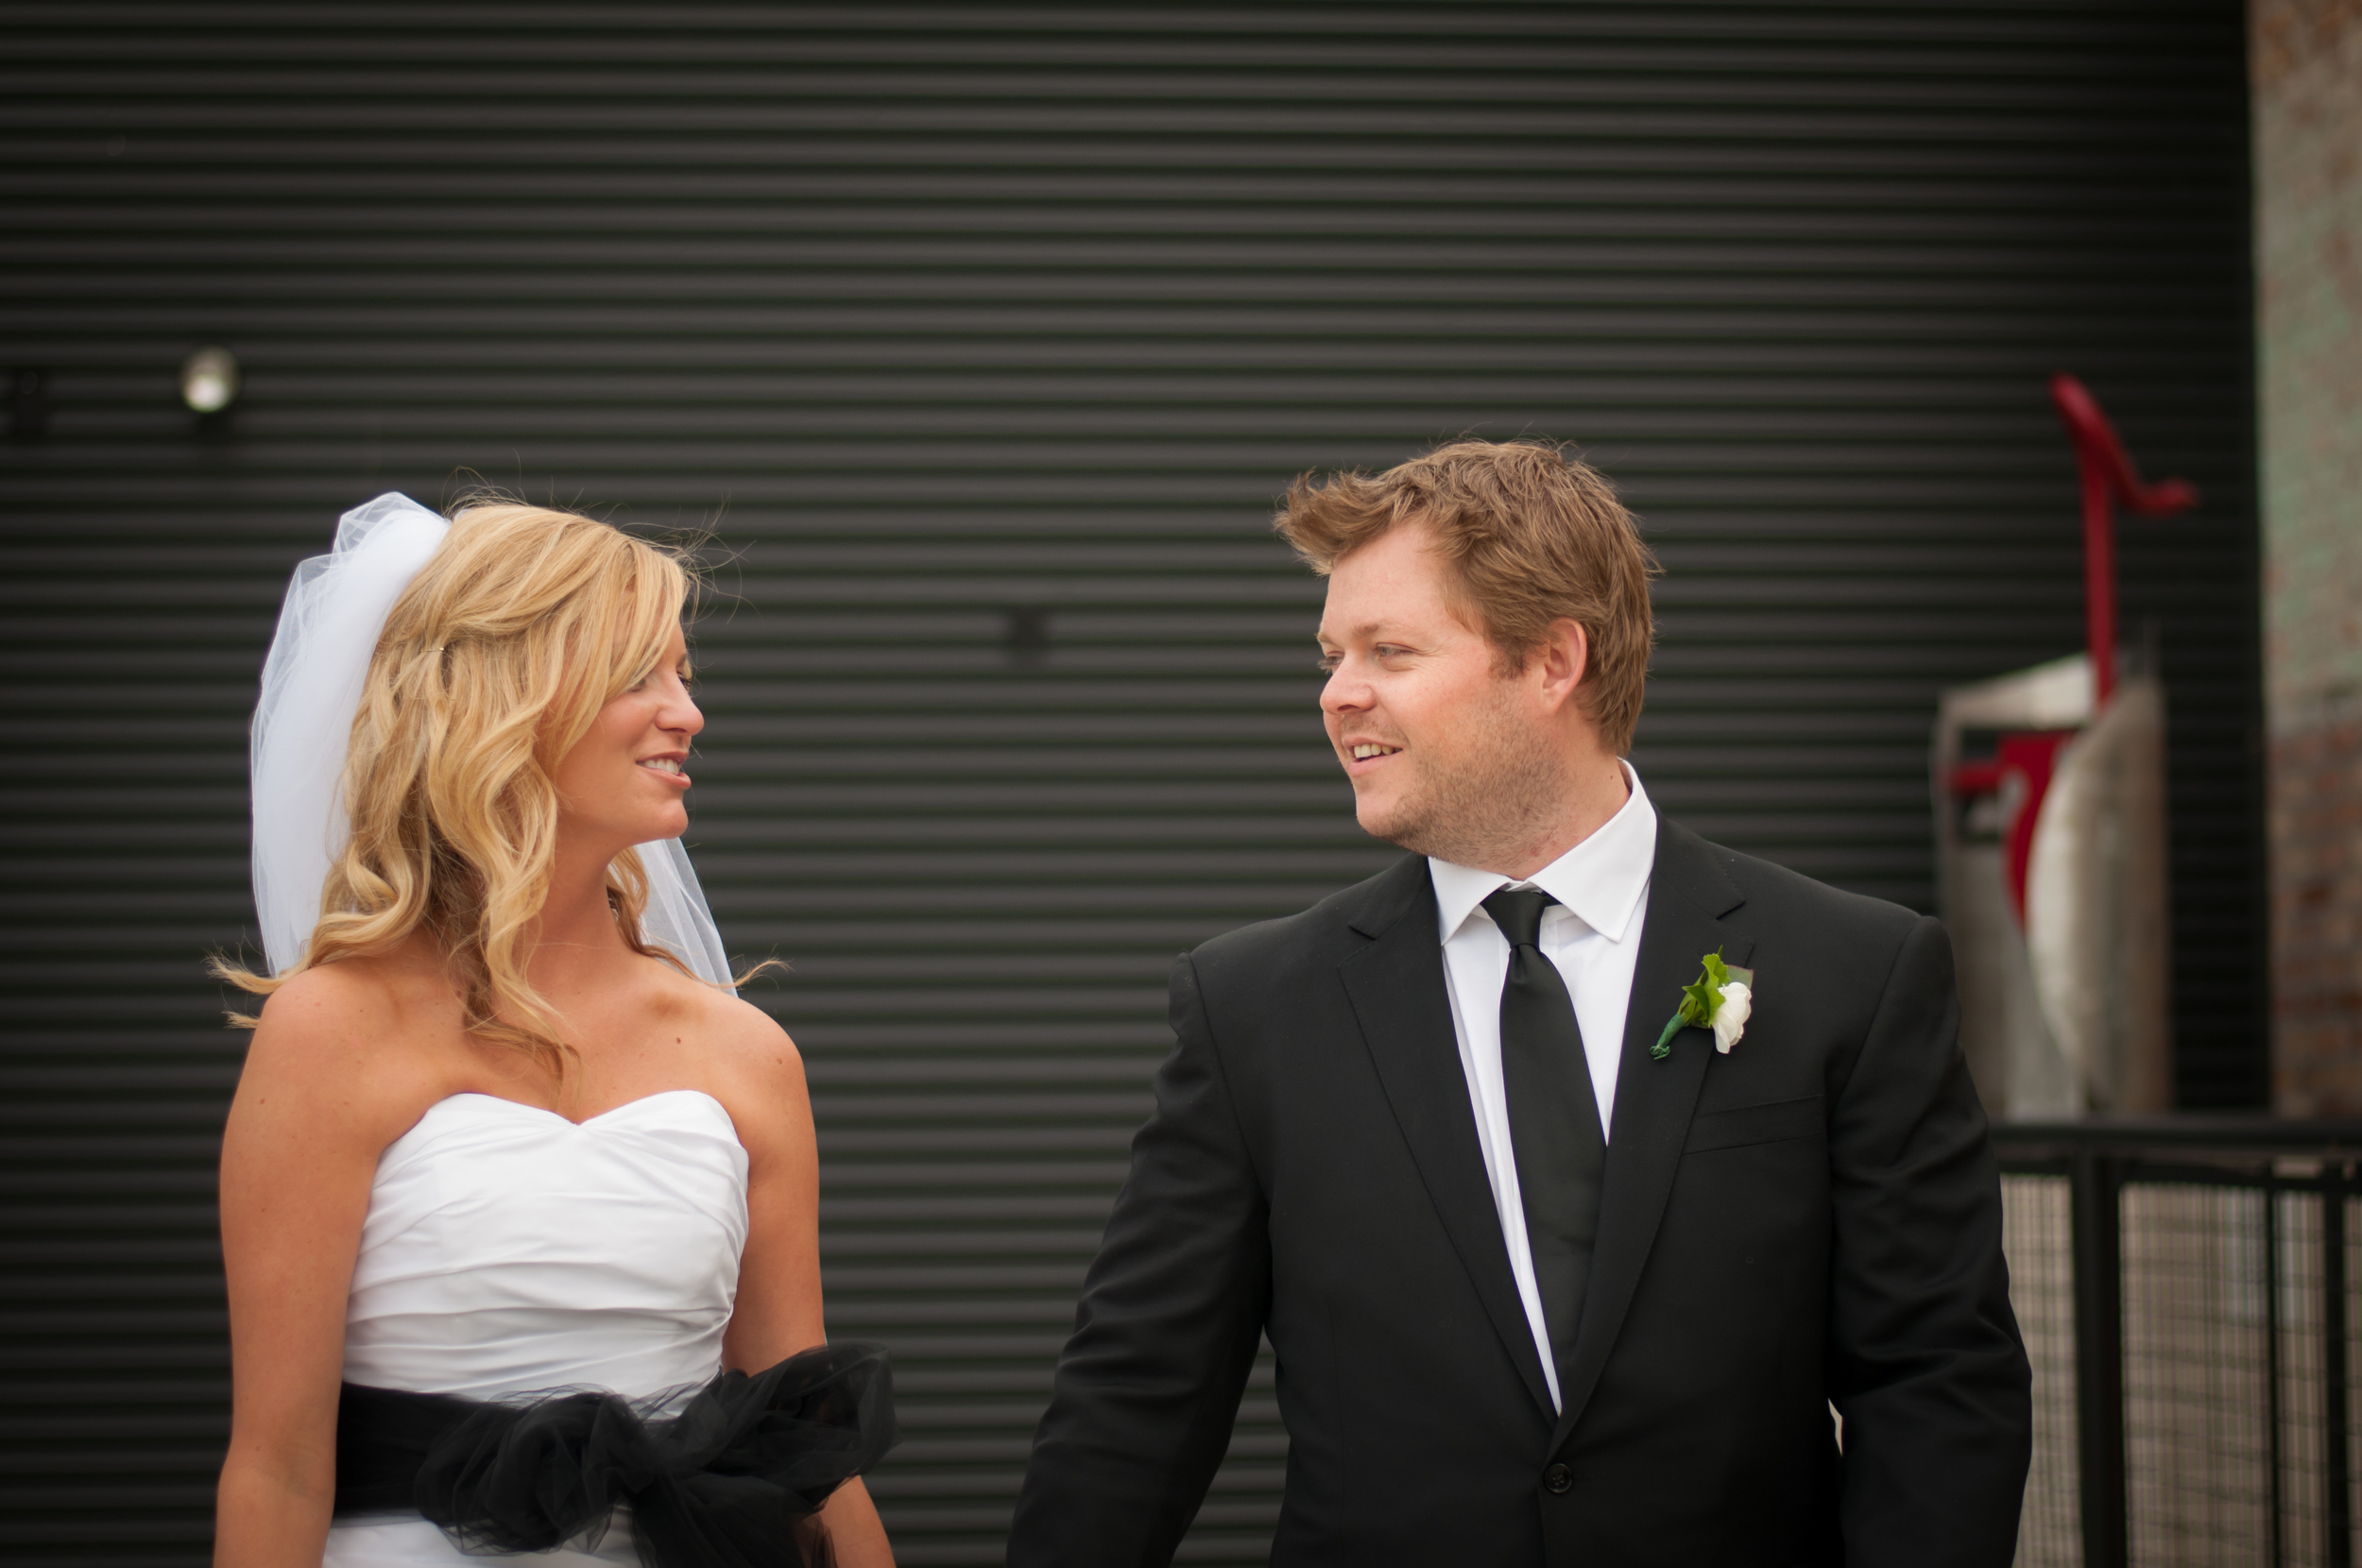 meredith donnelly photography-67.jpg